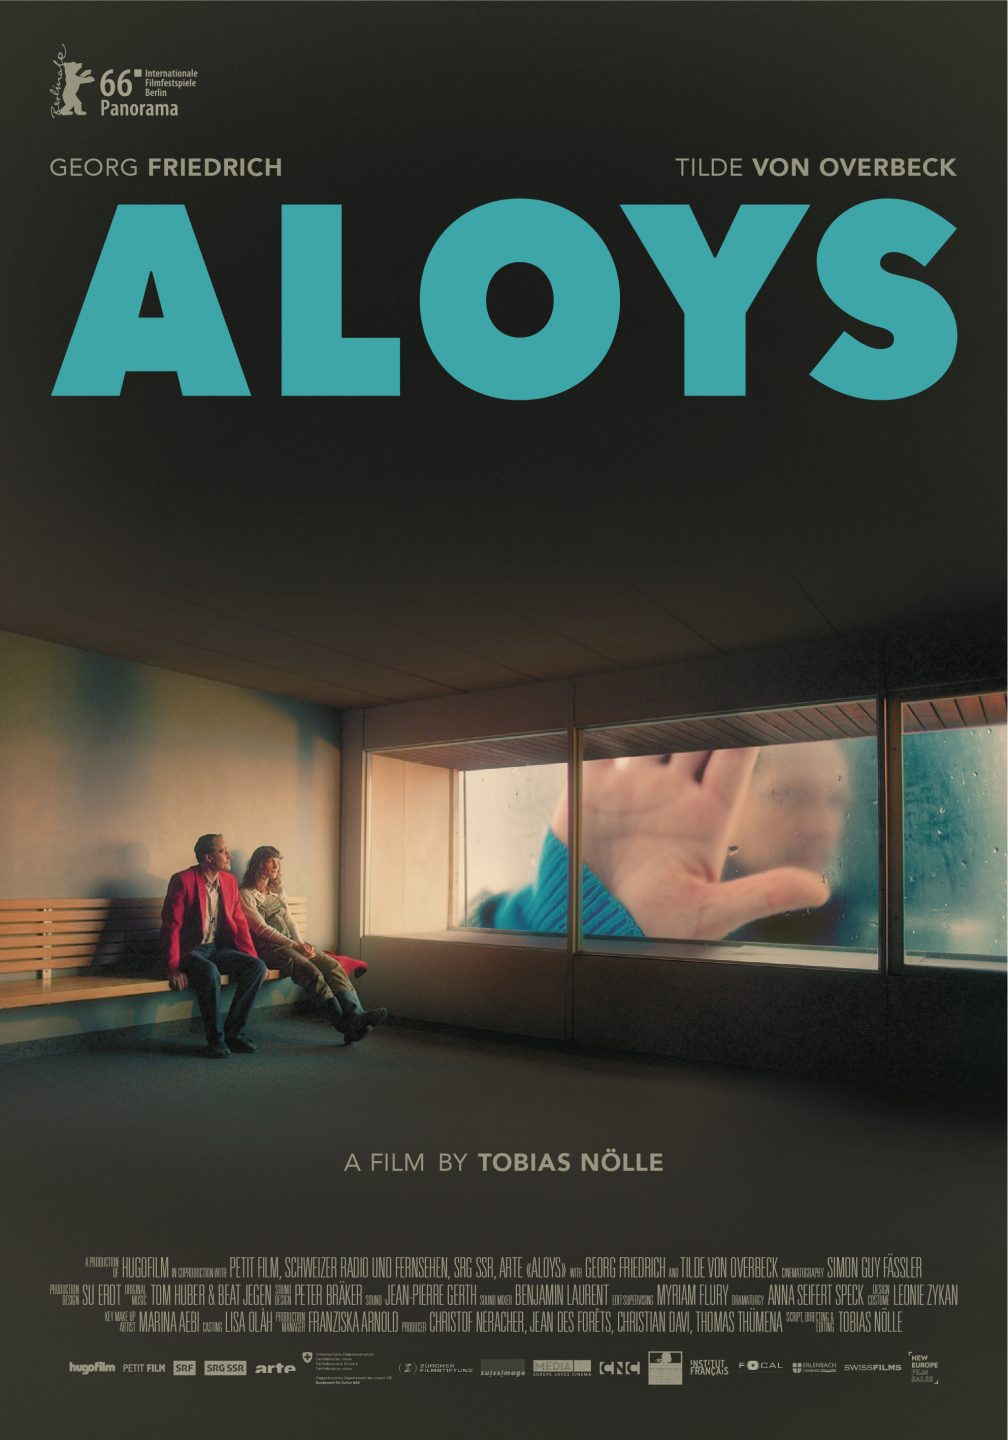 aloys_poster_small2-01